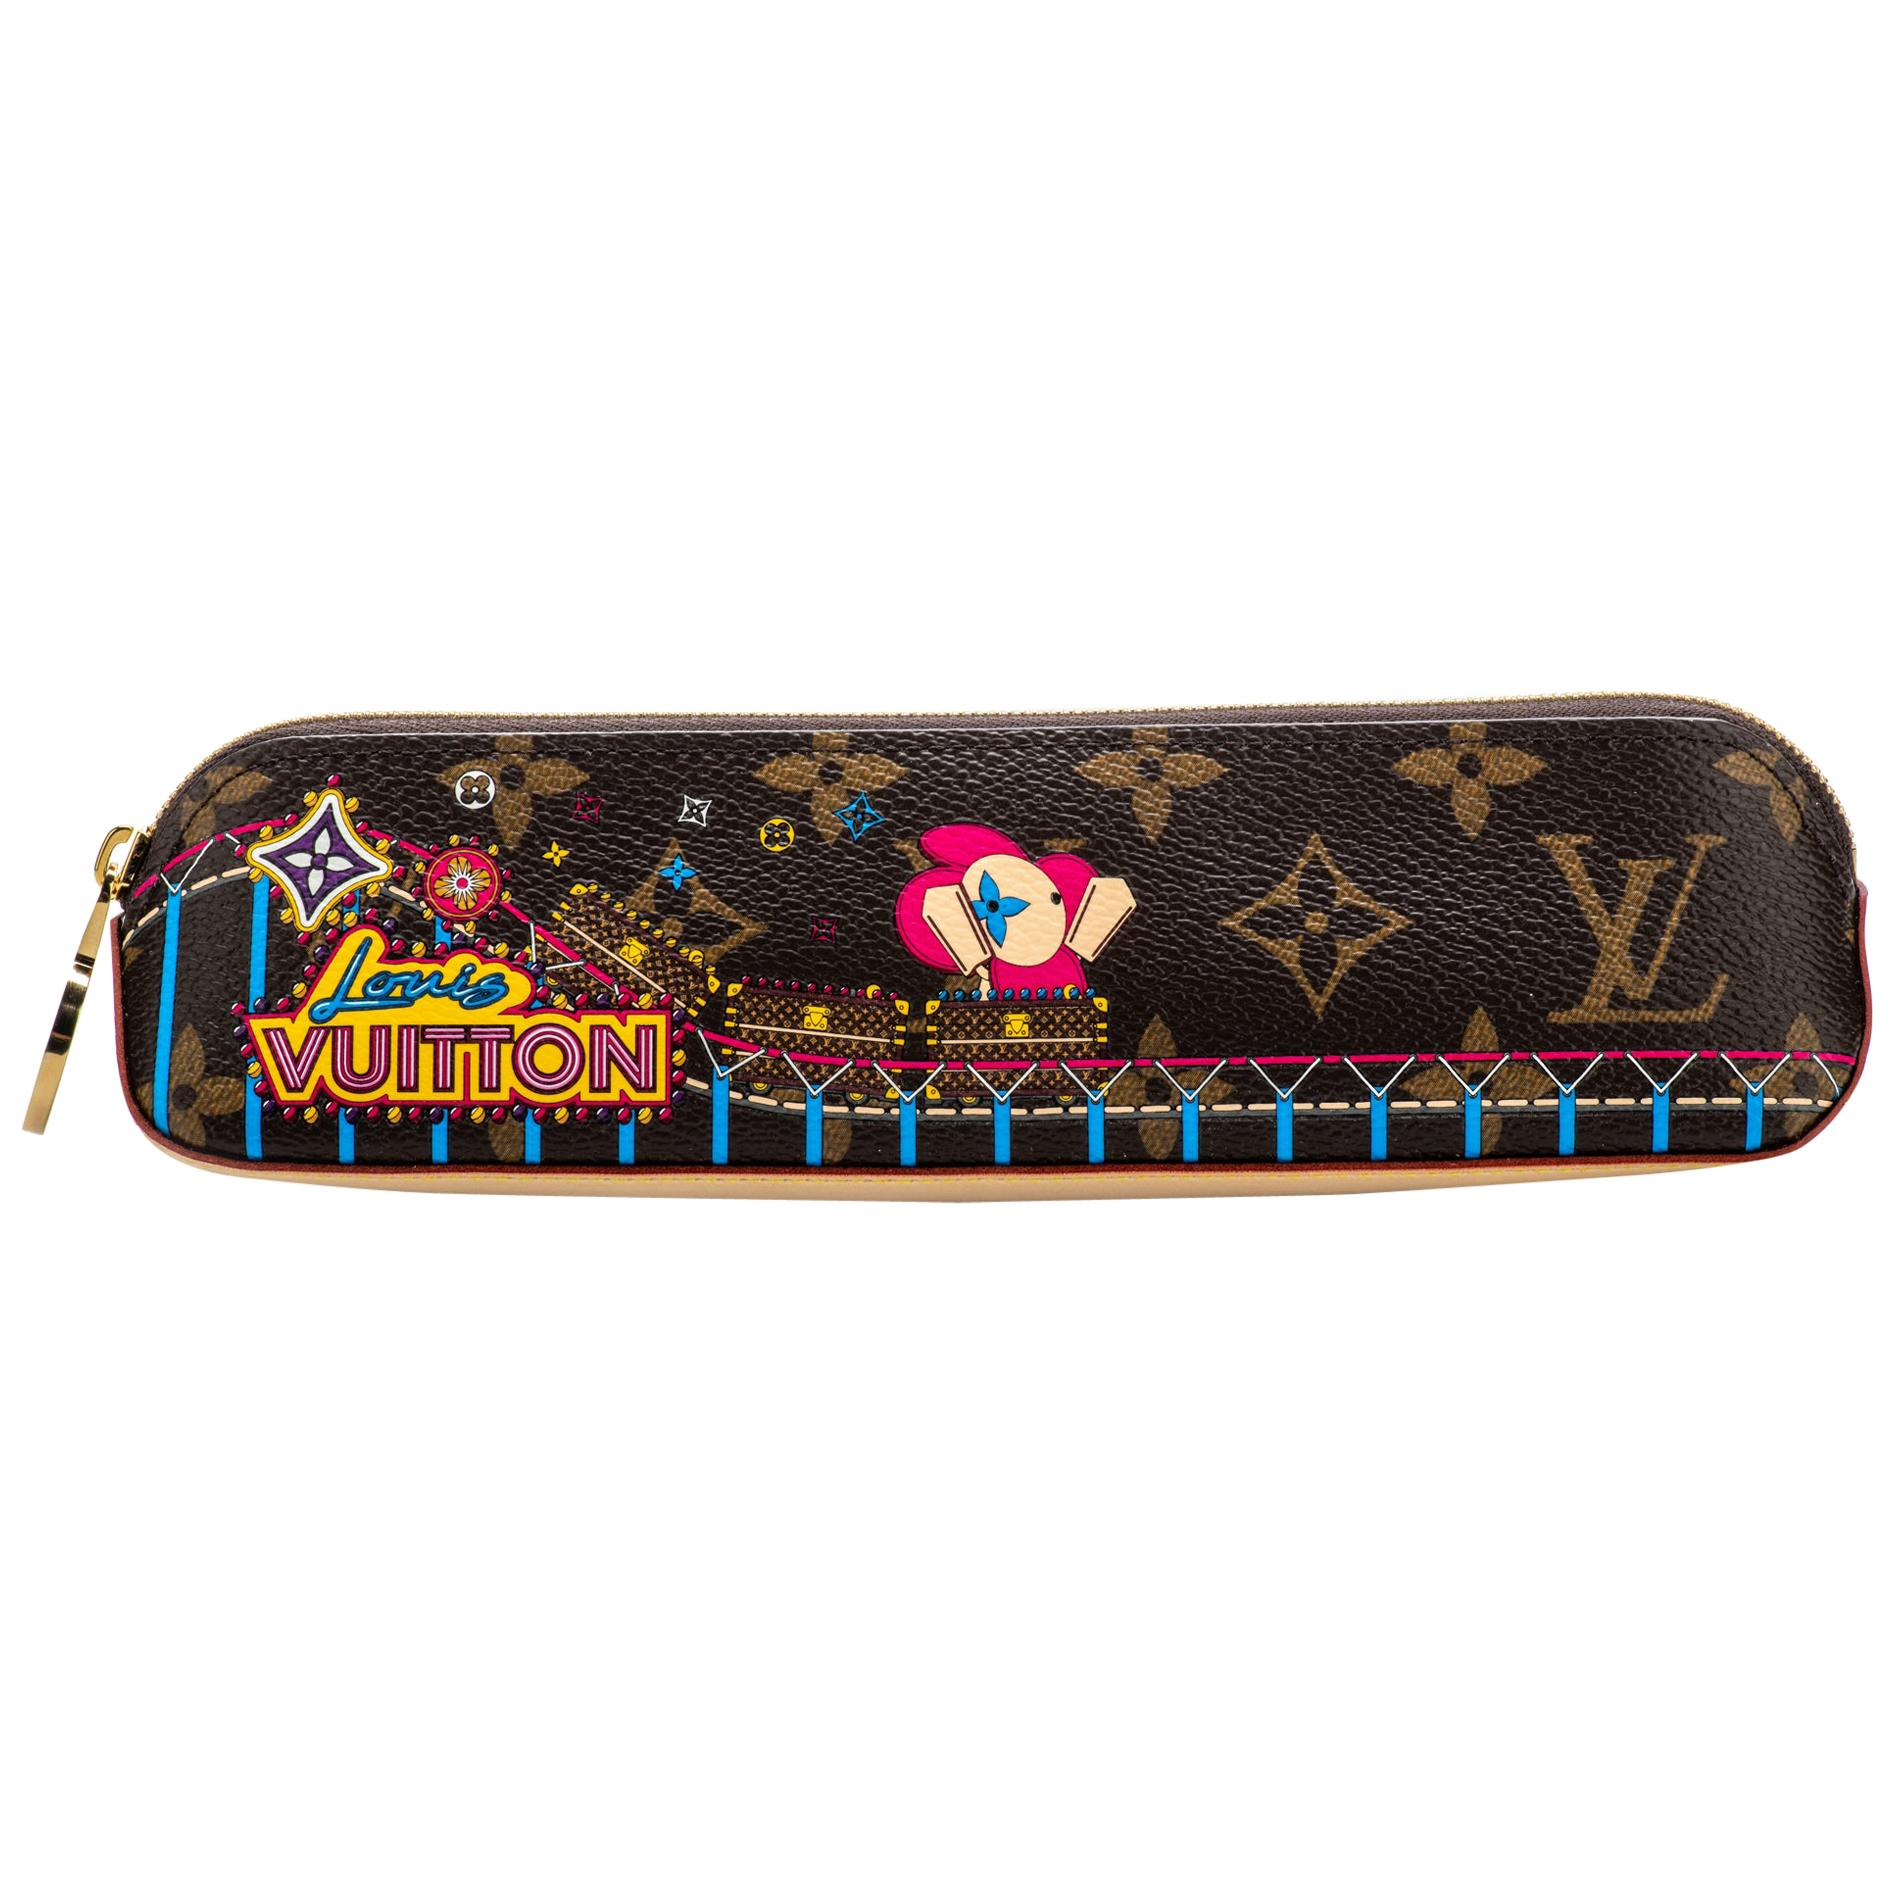 New Louis Vuitton Limited Edition Rollercoaster Pencil Case